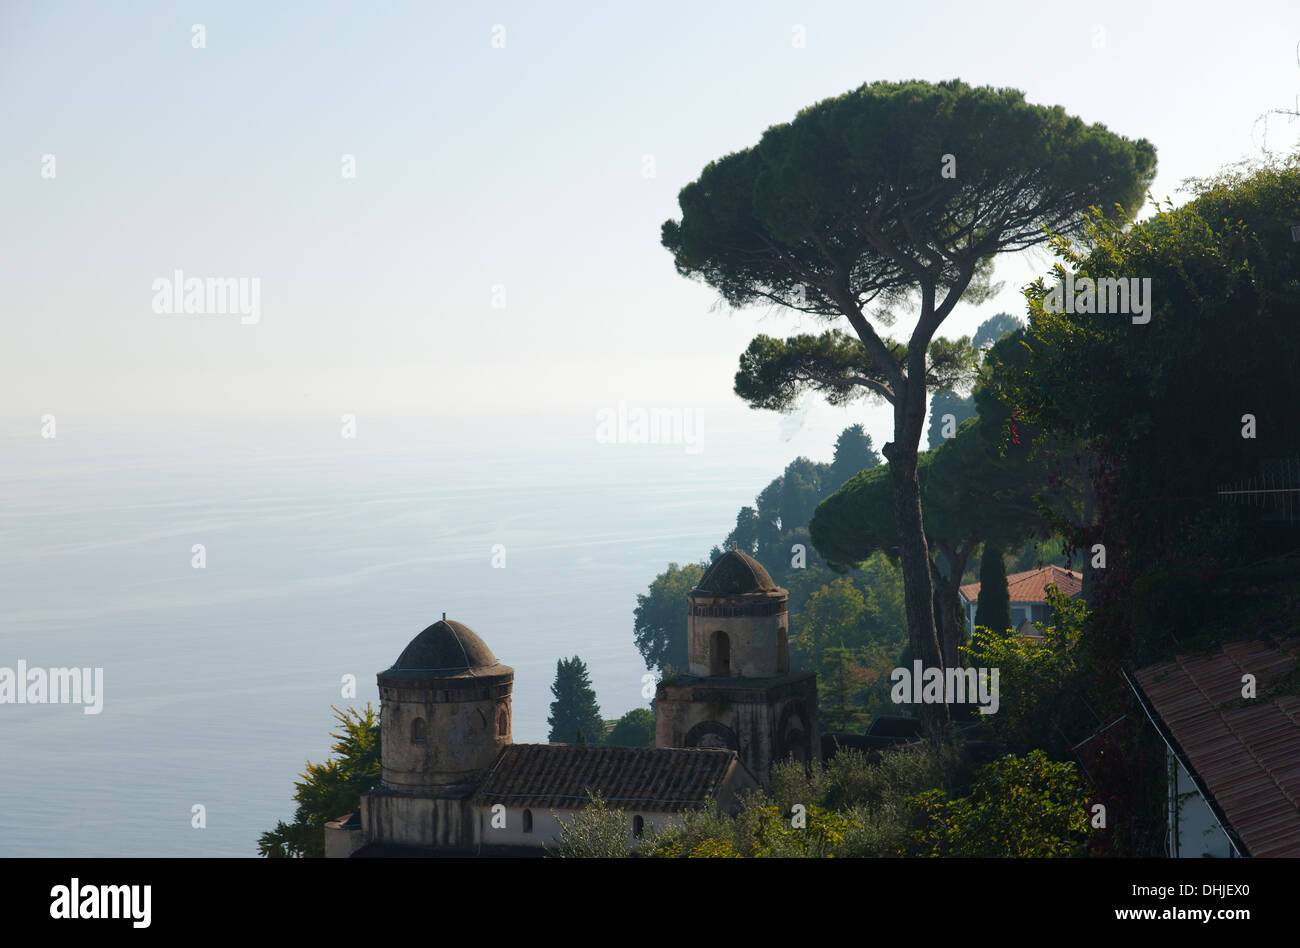 An iconic canopy pine tree stands on the Amalfi Coast, Italy. - Stock Image